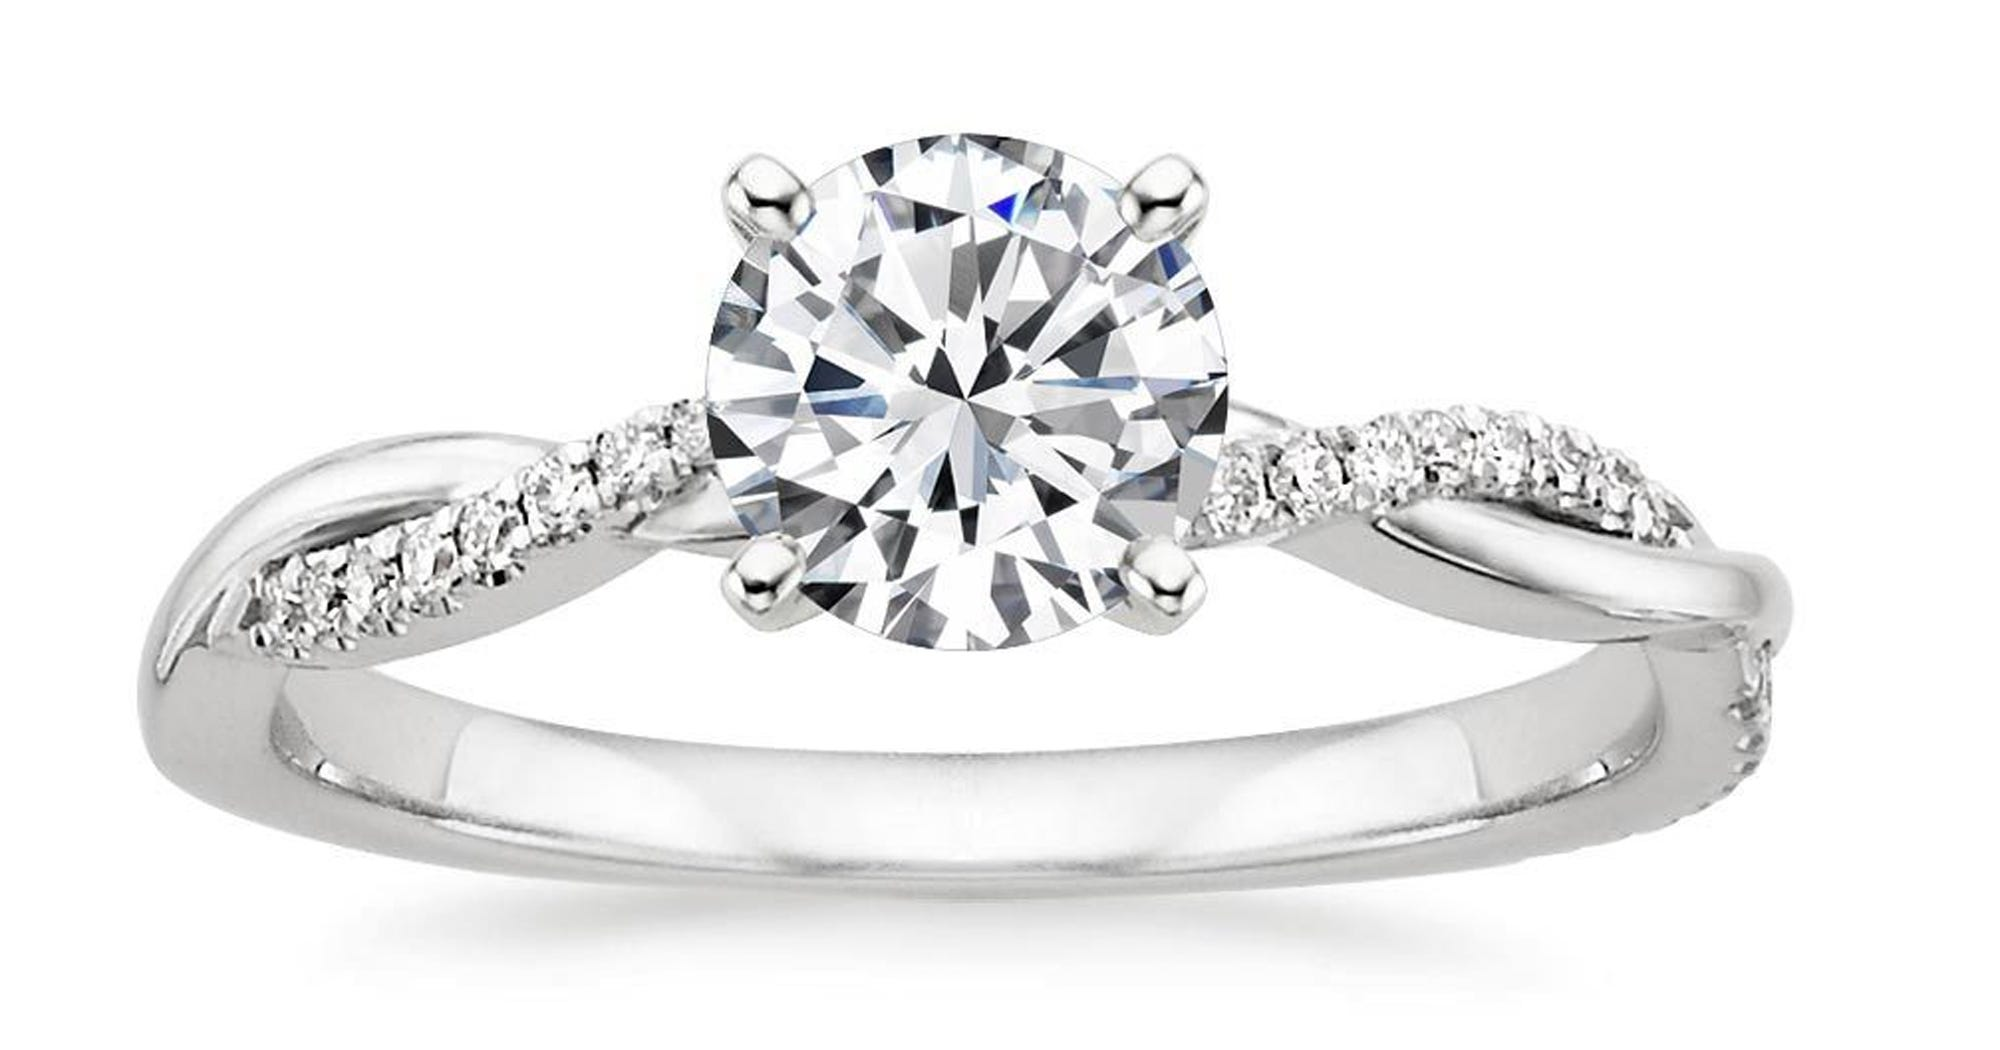 rings cut heart round brilliant diamond ring melbourne bridal collections elegant classy engagement collection